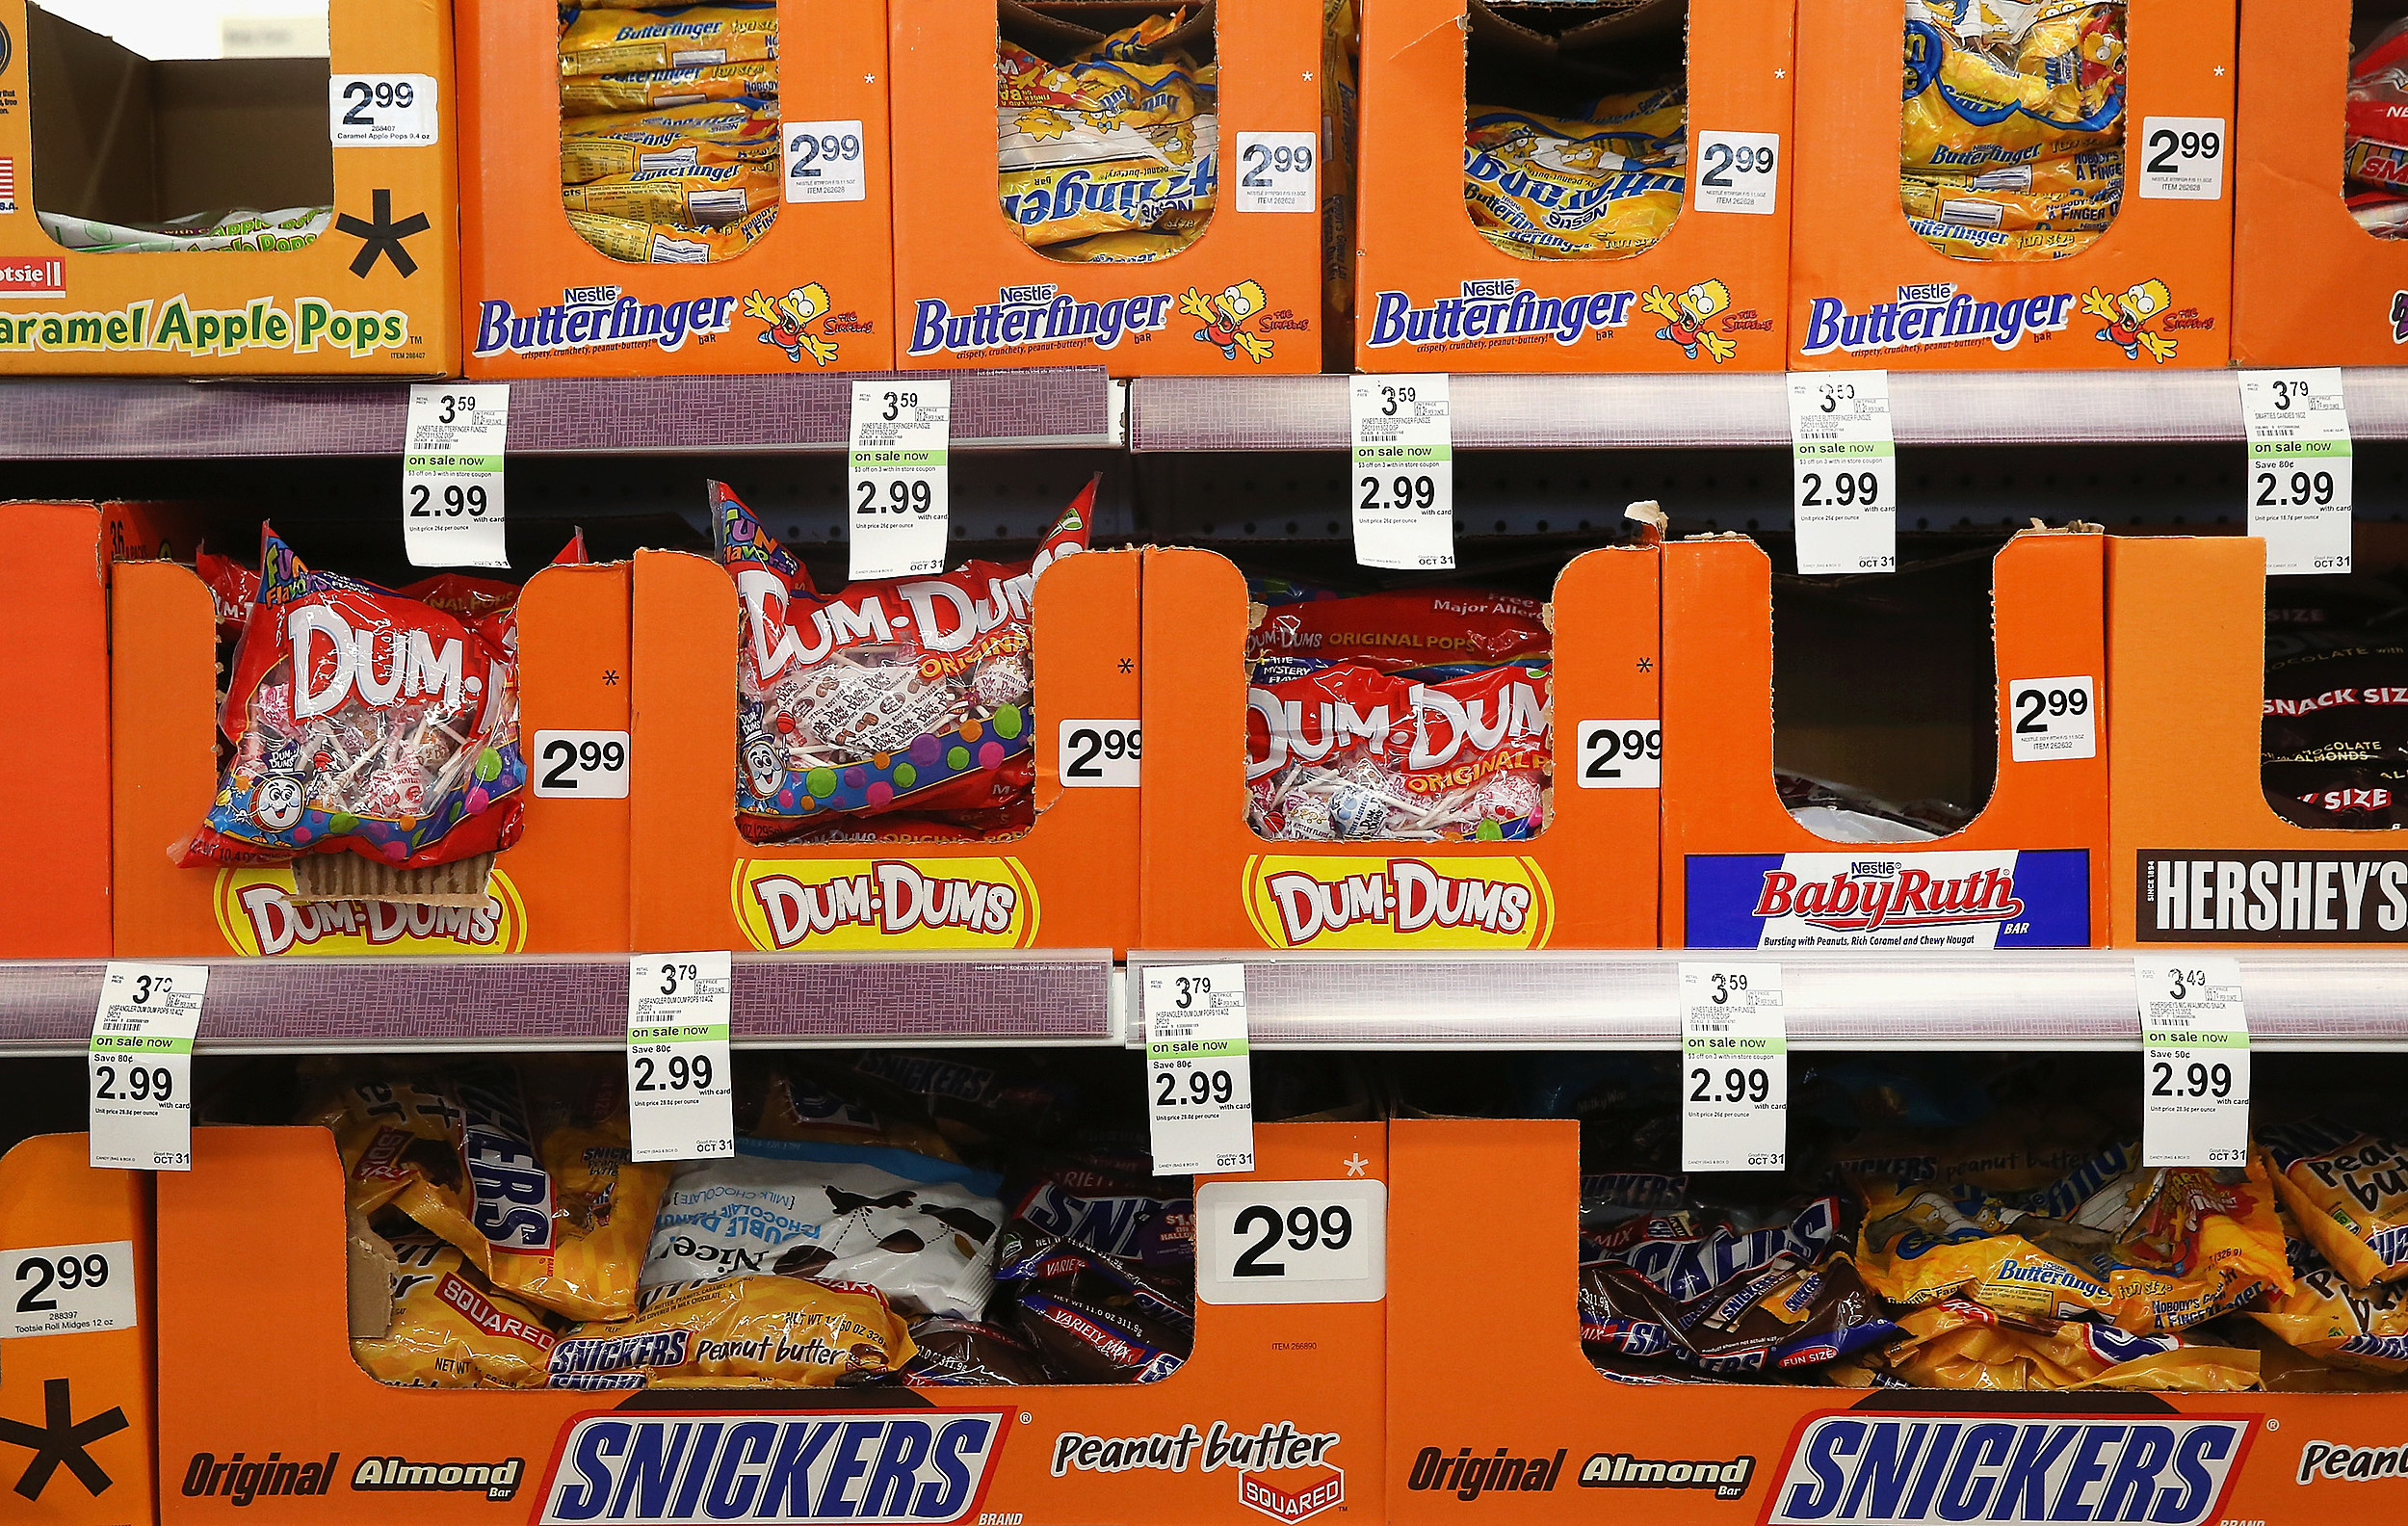 ohio man arrested for peeing on halloween candy at kohl's